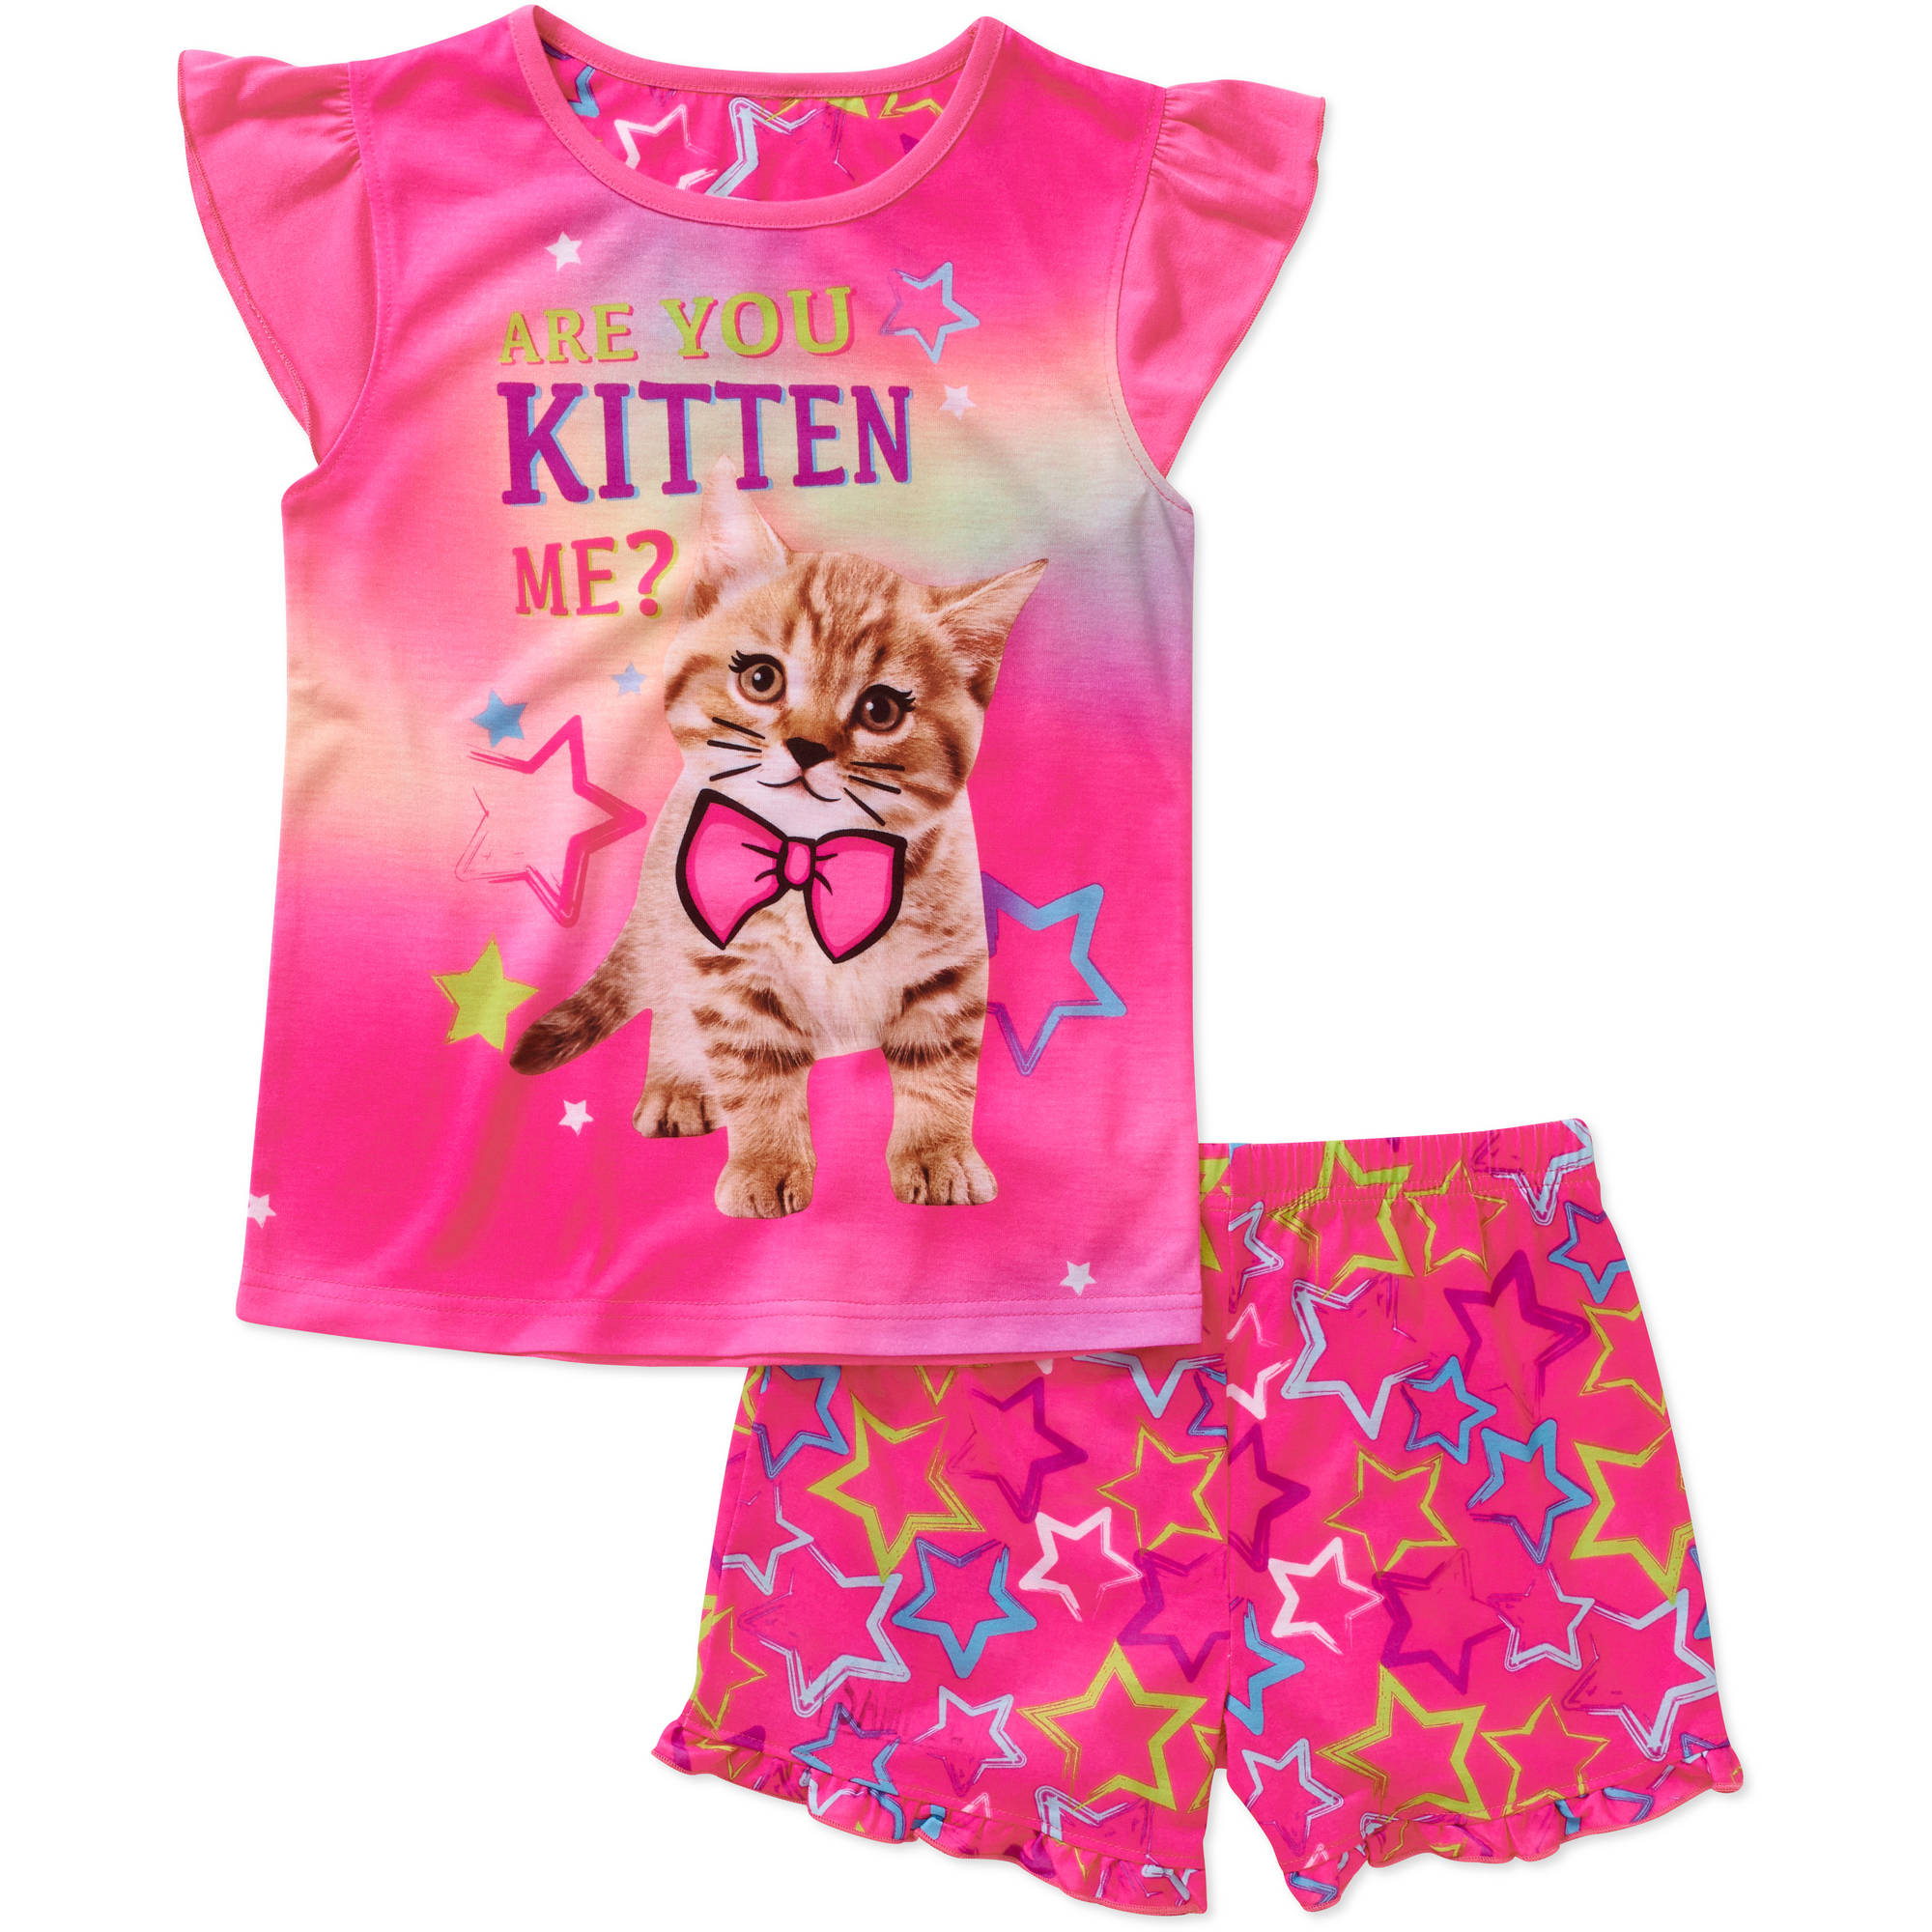 Girls' Photo Real Graphic Short Sleeve Sleep Top and Shorts 2 Piece Pajama Set